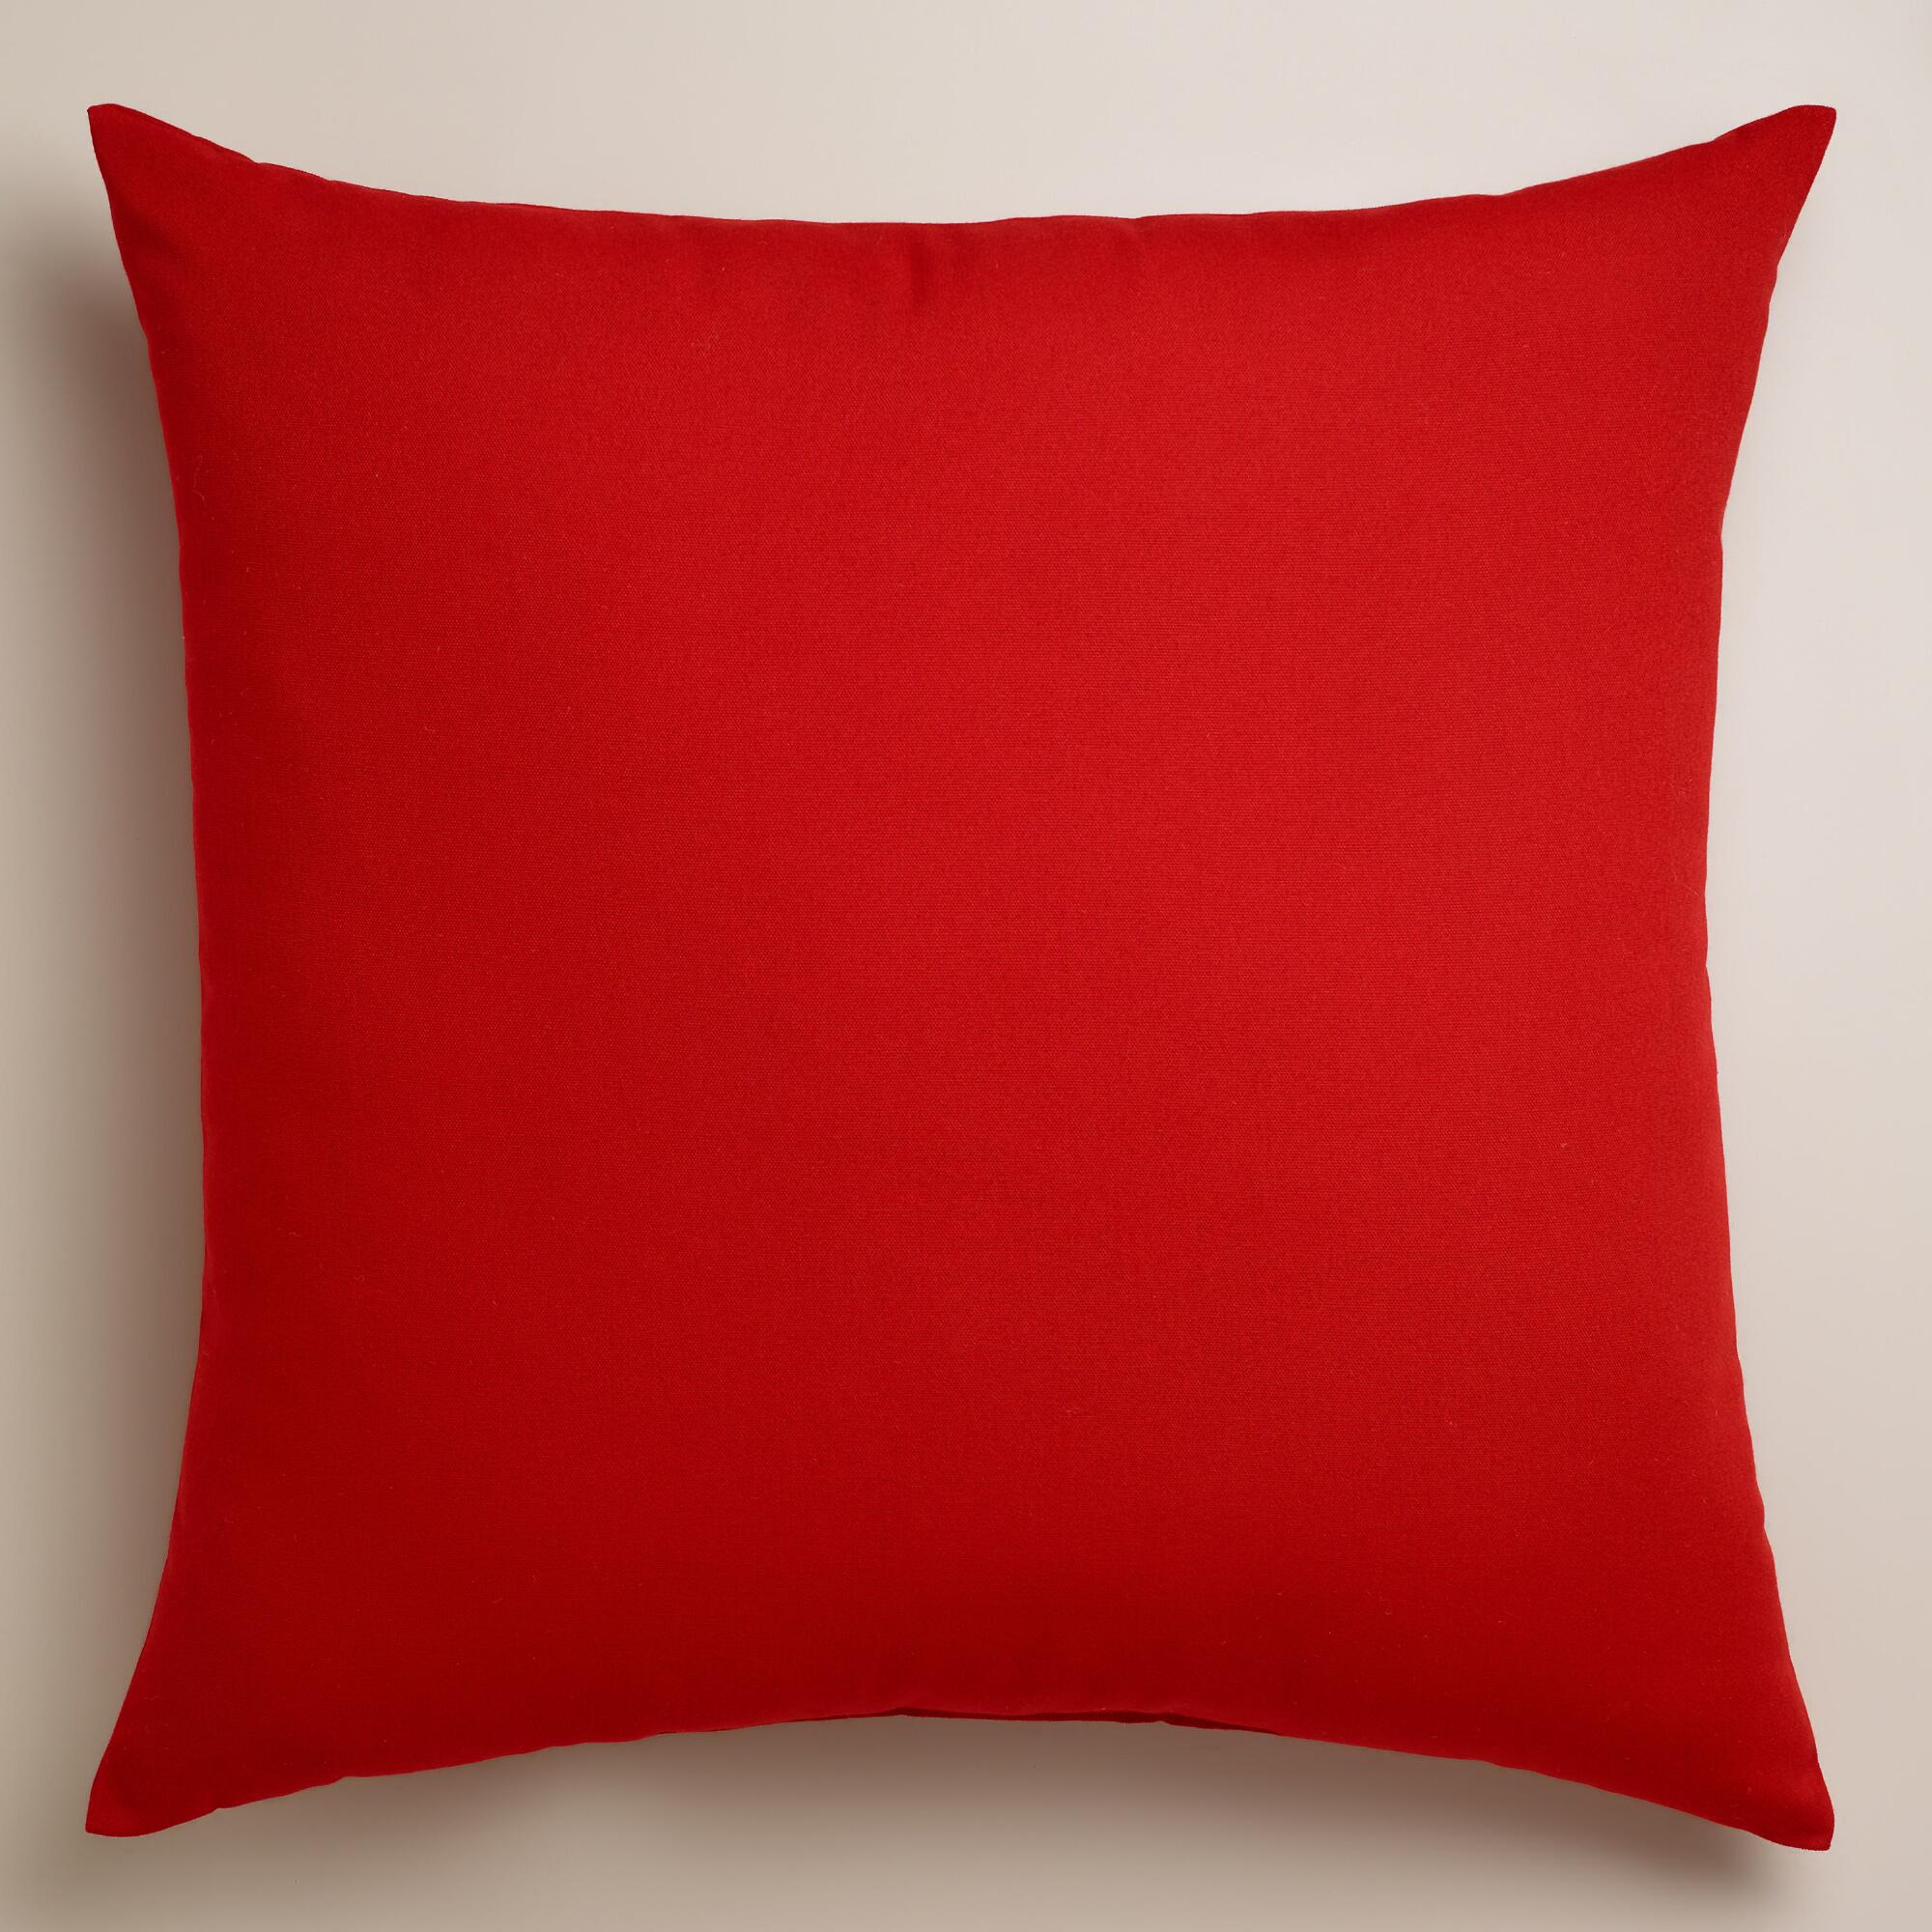 Throw Pillow Red : Red Outdoor Throw Pillow World Market